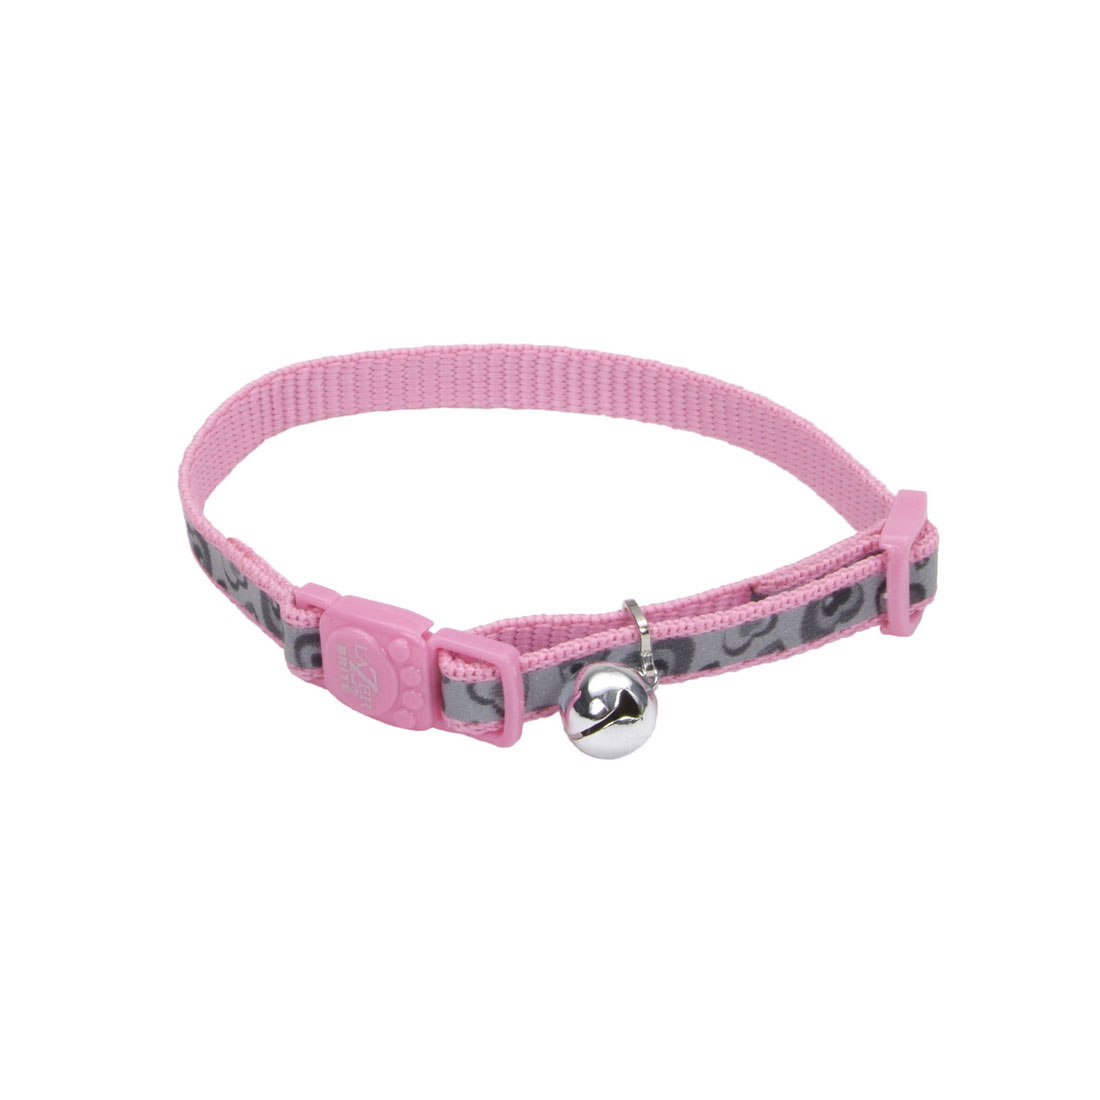 Lazer Brite Reflective Adjustable Breakaway Cat Collar, Pink New Hearts, 3/8-in